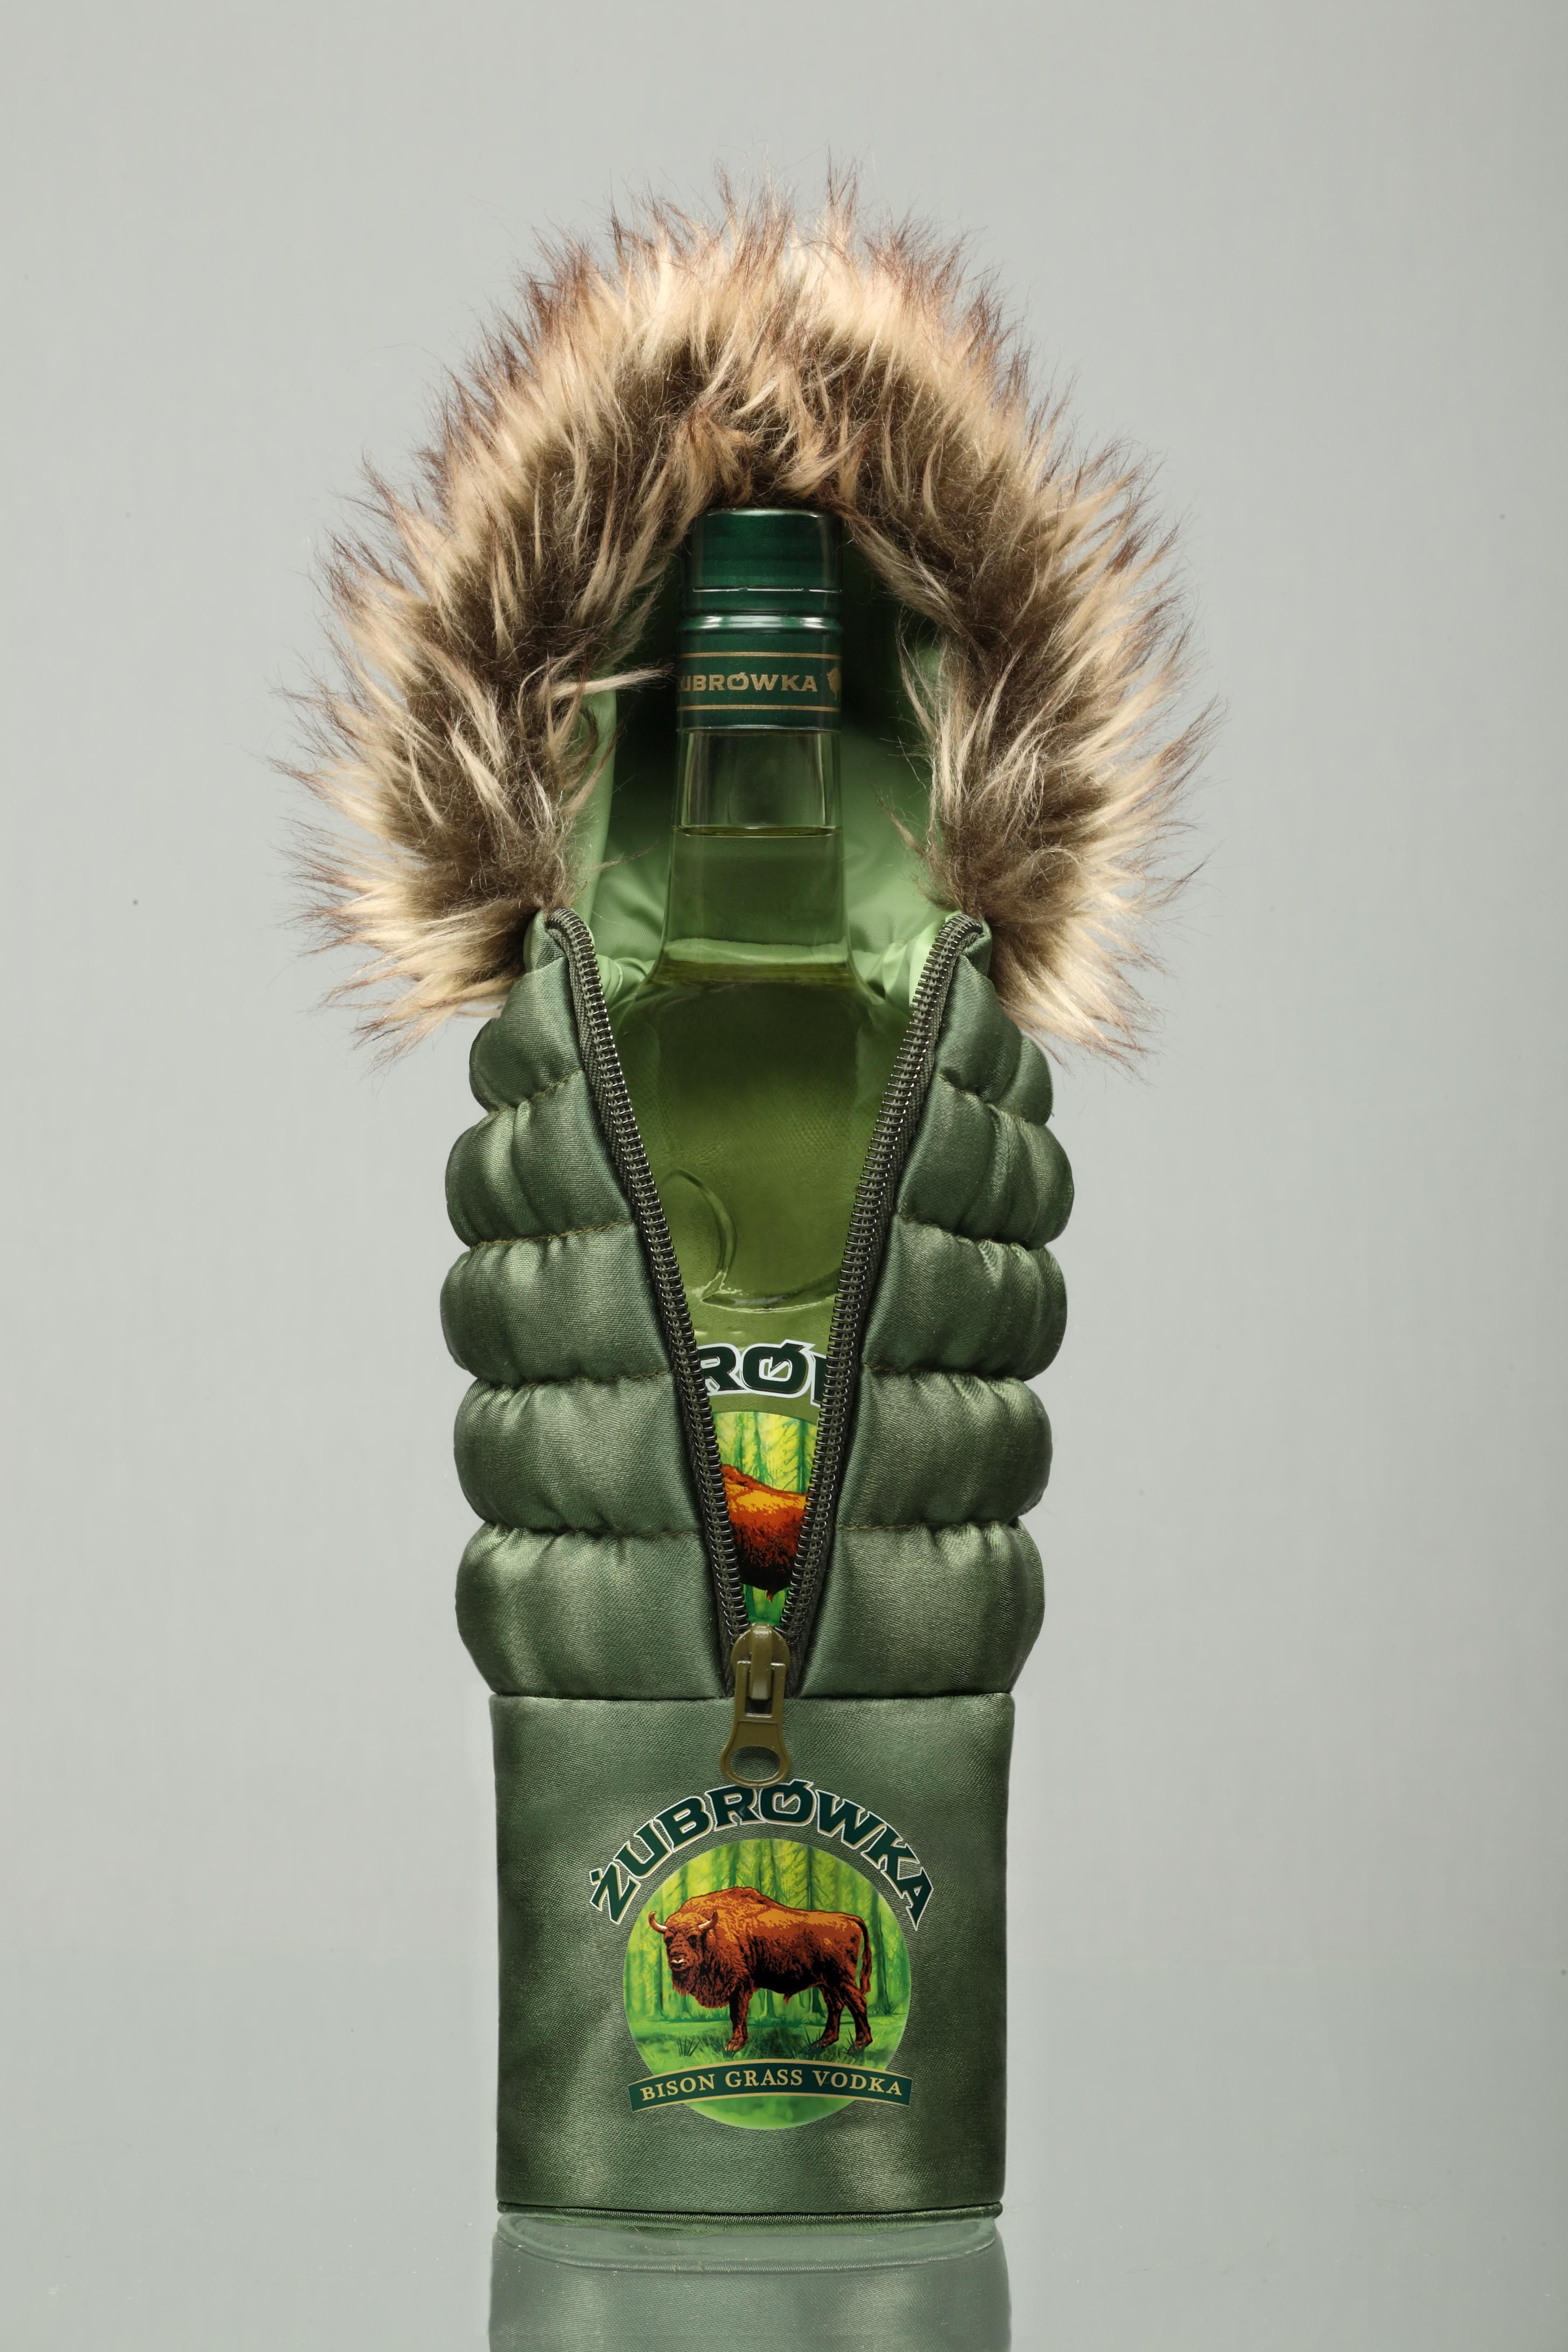 Zubrowka (well wrapped up for winter) Polish vodka